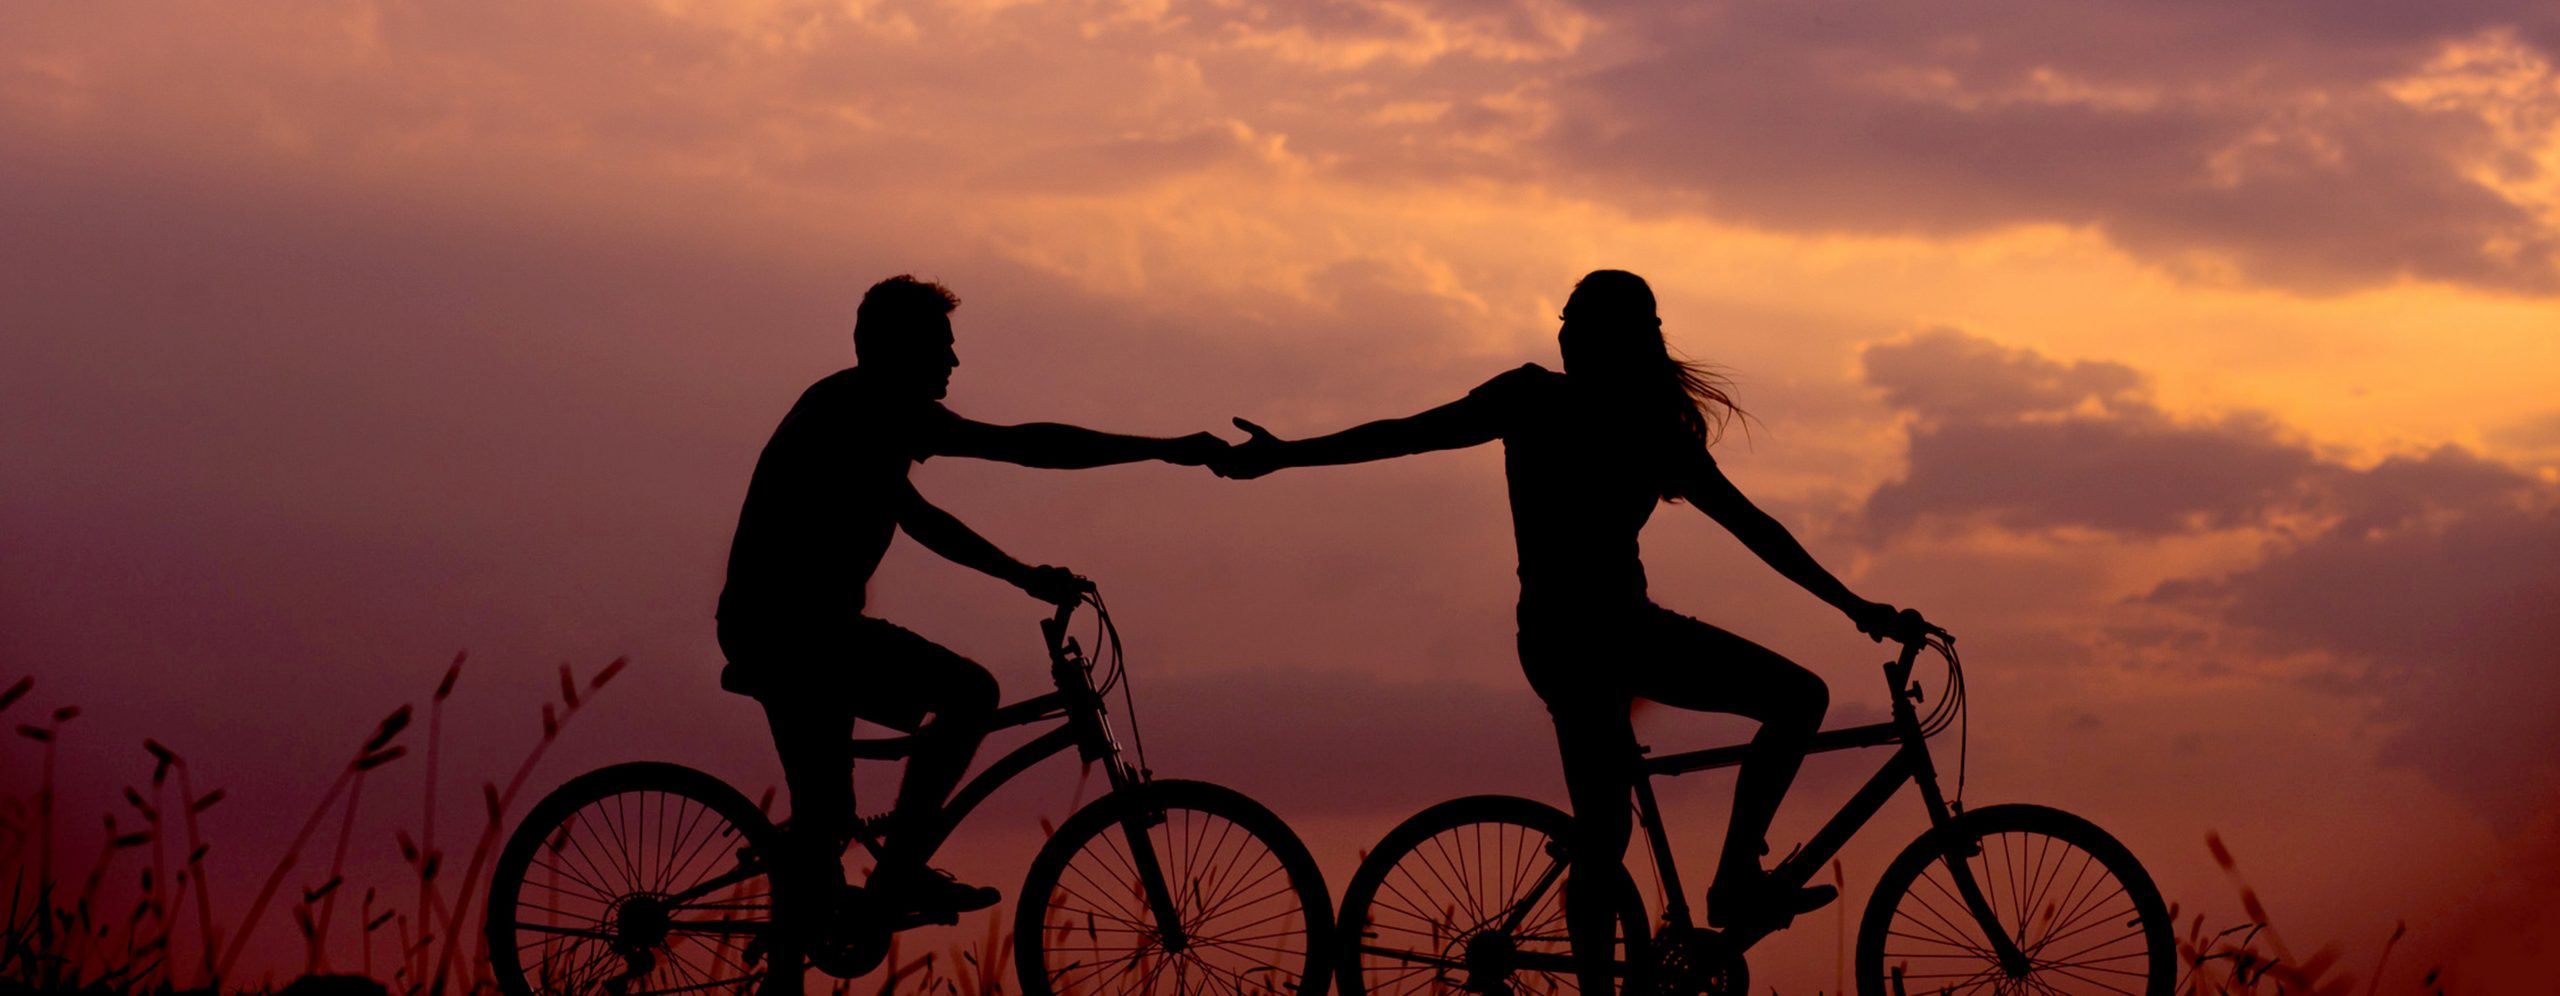 Couple riding bikes at sunset with their hands outstretched